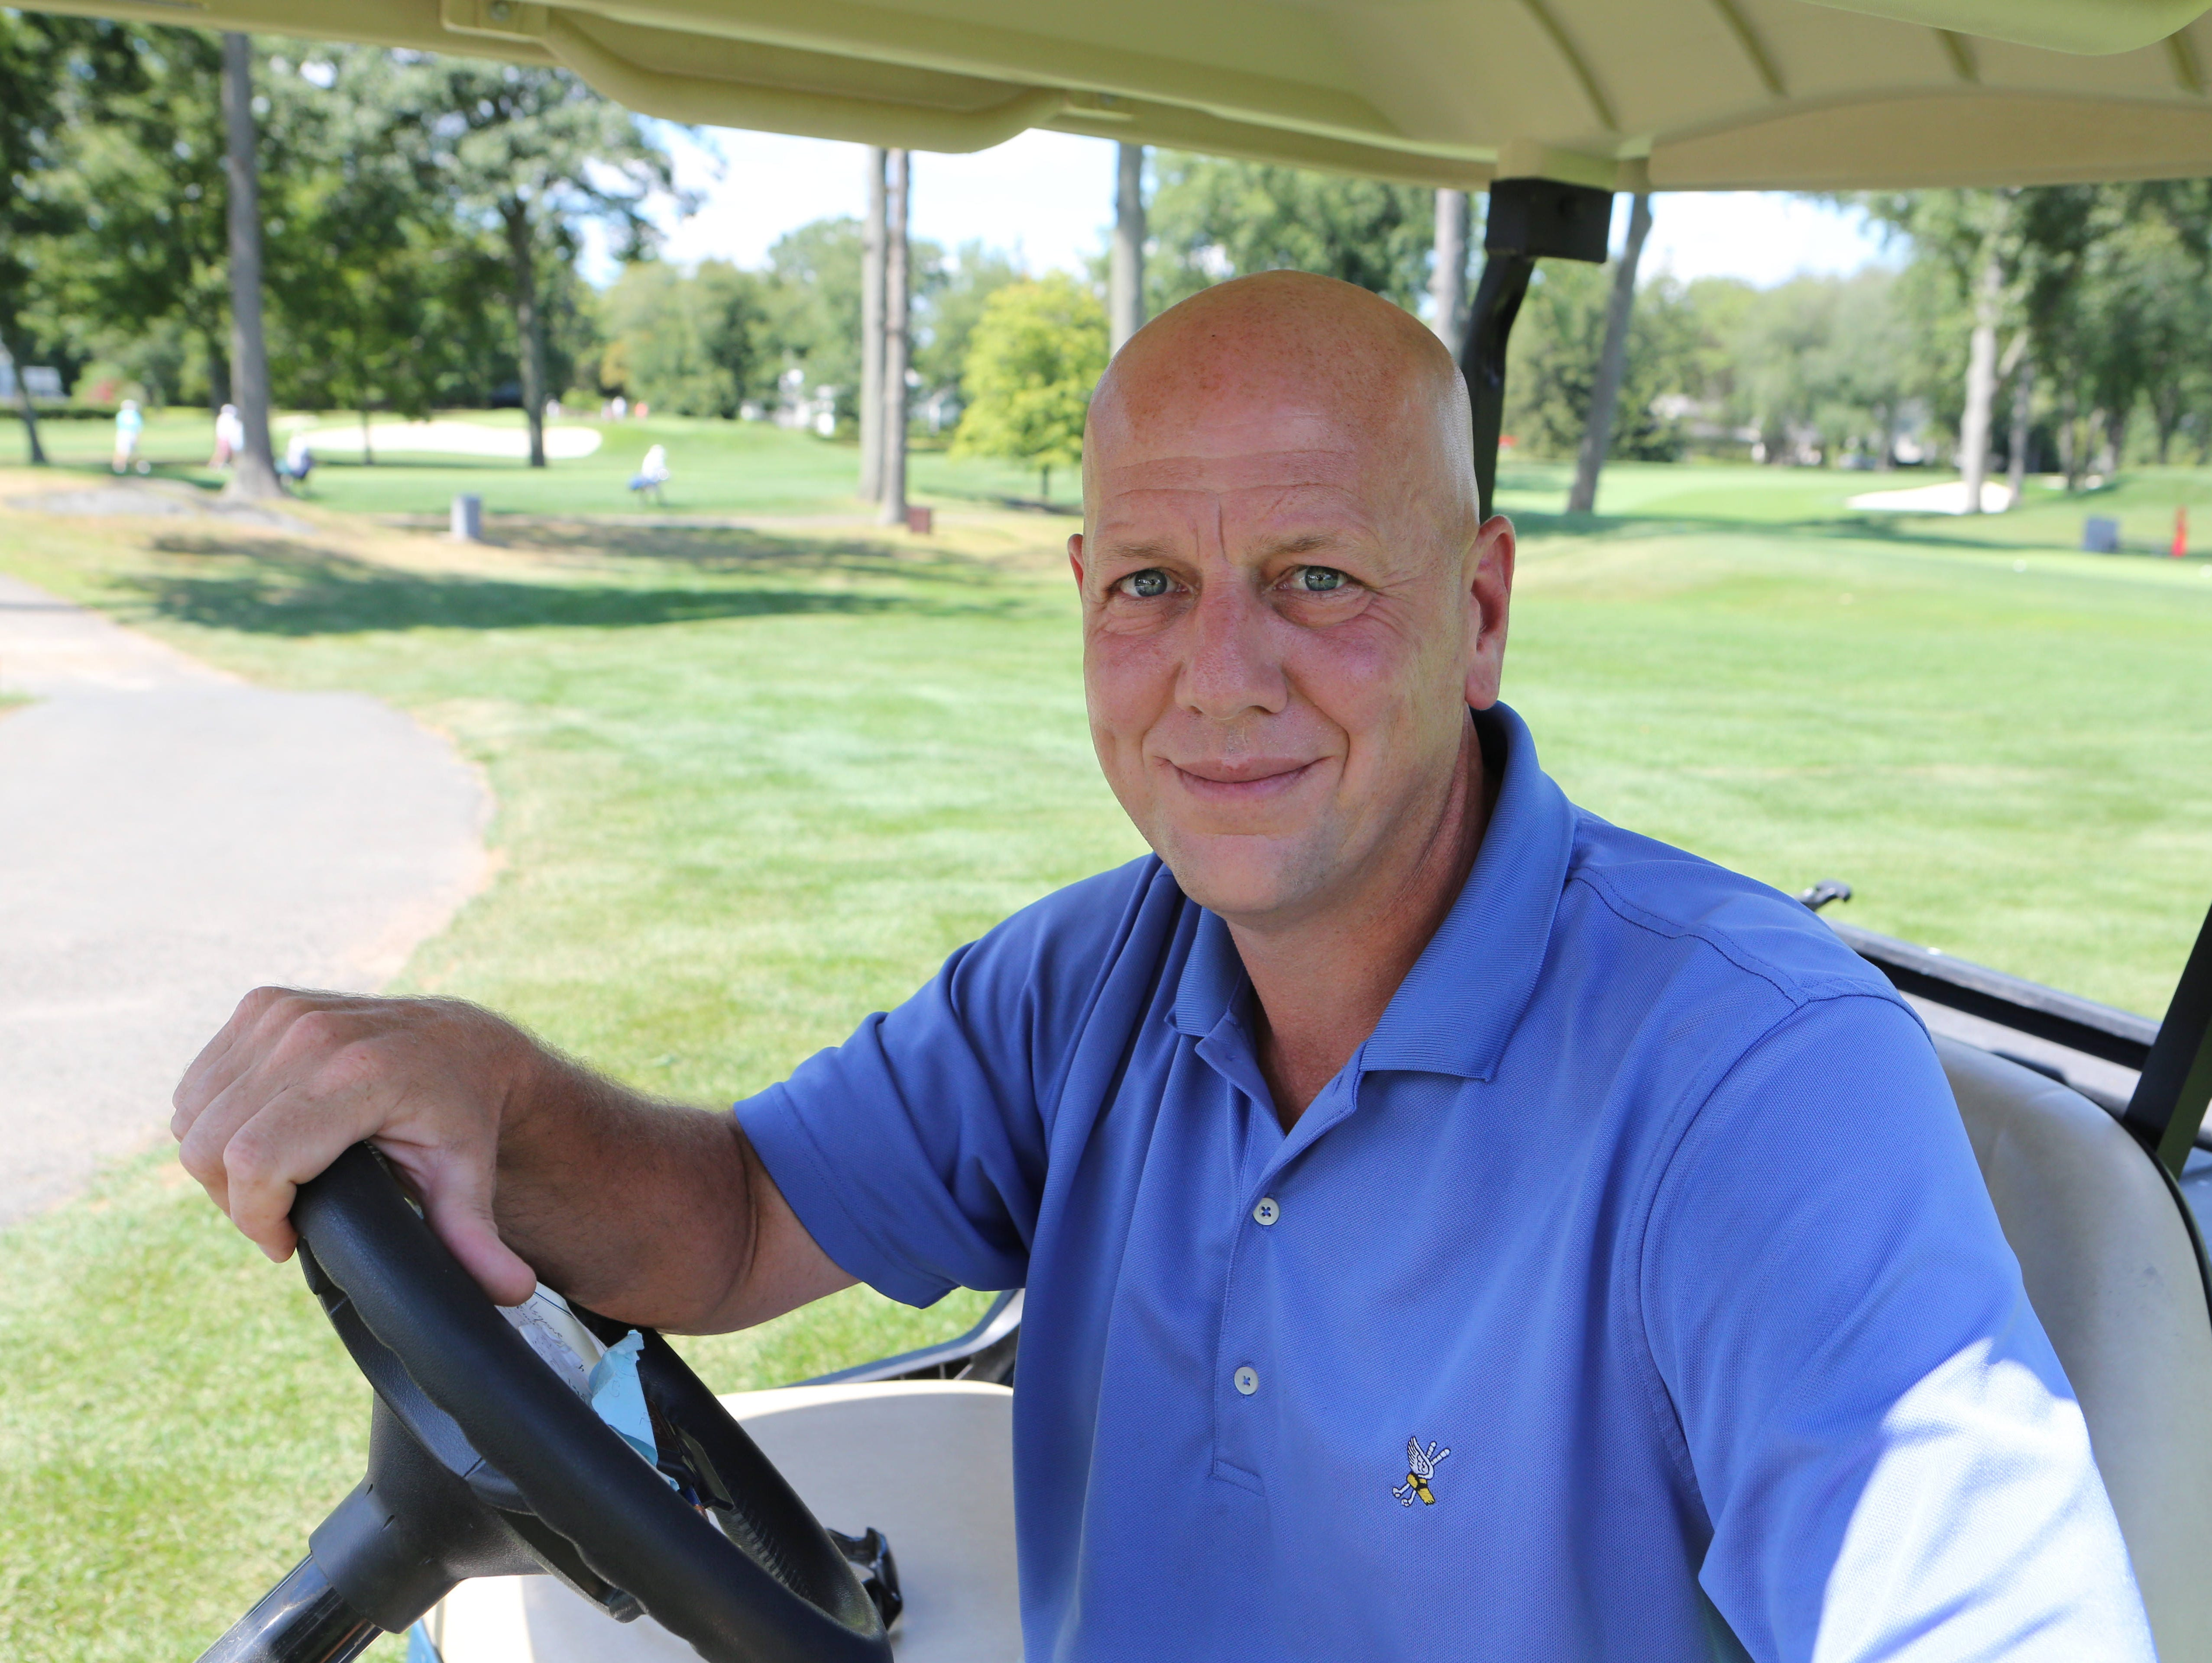 Stephen Rabideau, the director of golf courses at the Winged Foot Golf Club in Mamaroneck, is pictured on the East Course Aug. 13, 2015. The East Course, recently restored, is hosting the USGA Four-Ball Championship next spring.